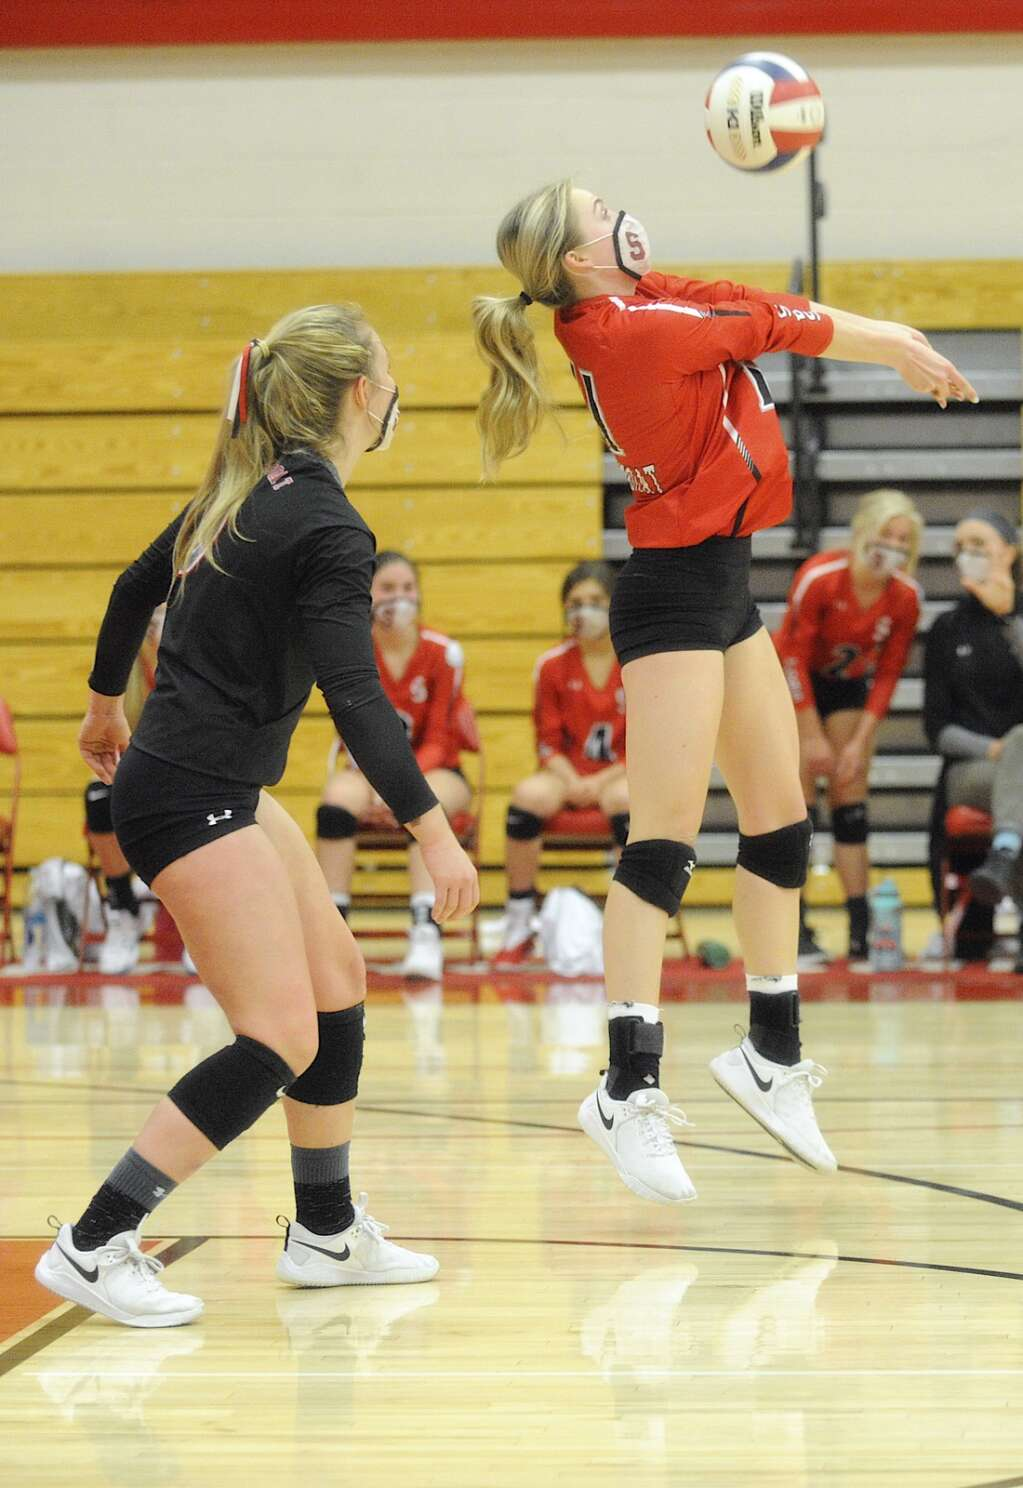 Steamboat Springs junior Sophie Diehl recieves a serve during a game against No. 1 Palisade on Saturday. (Photo by Shelby Reardon)